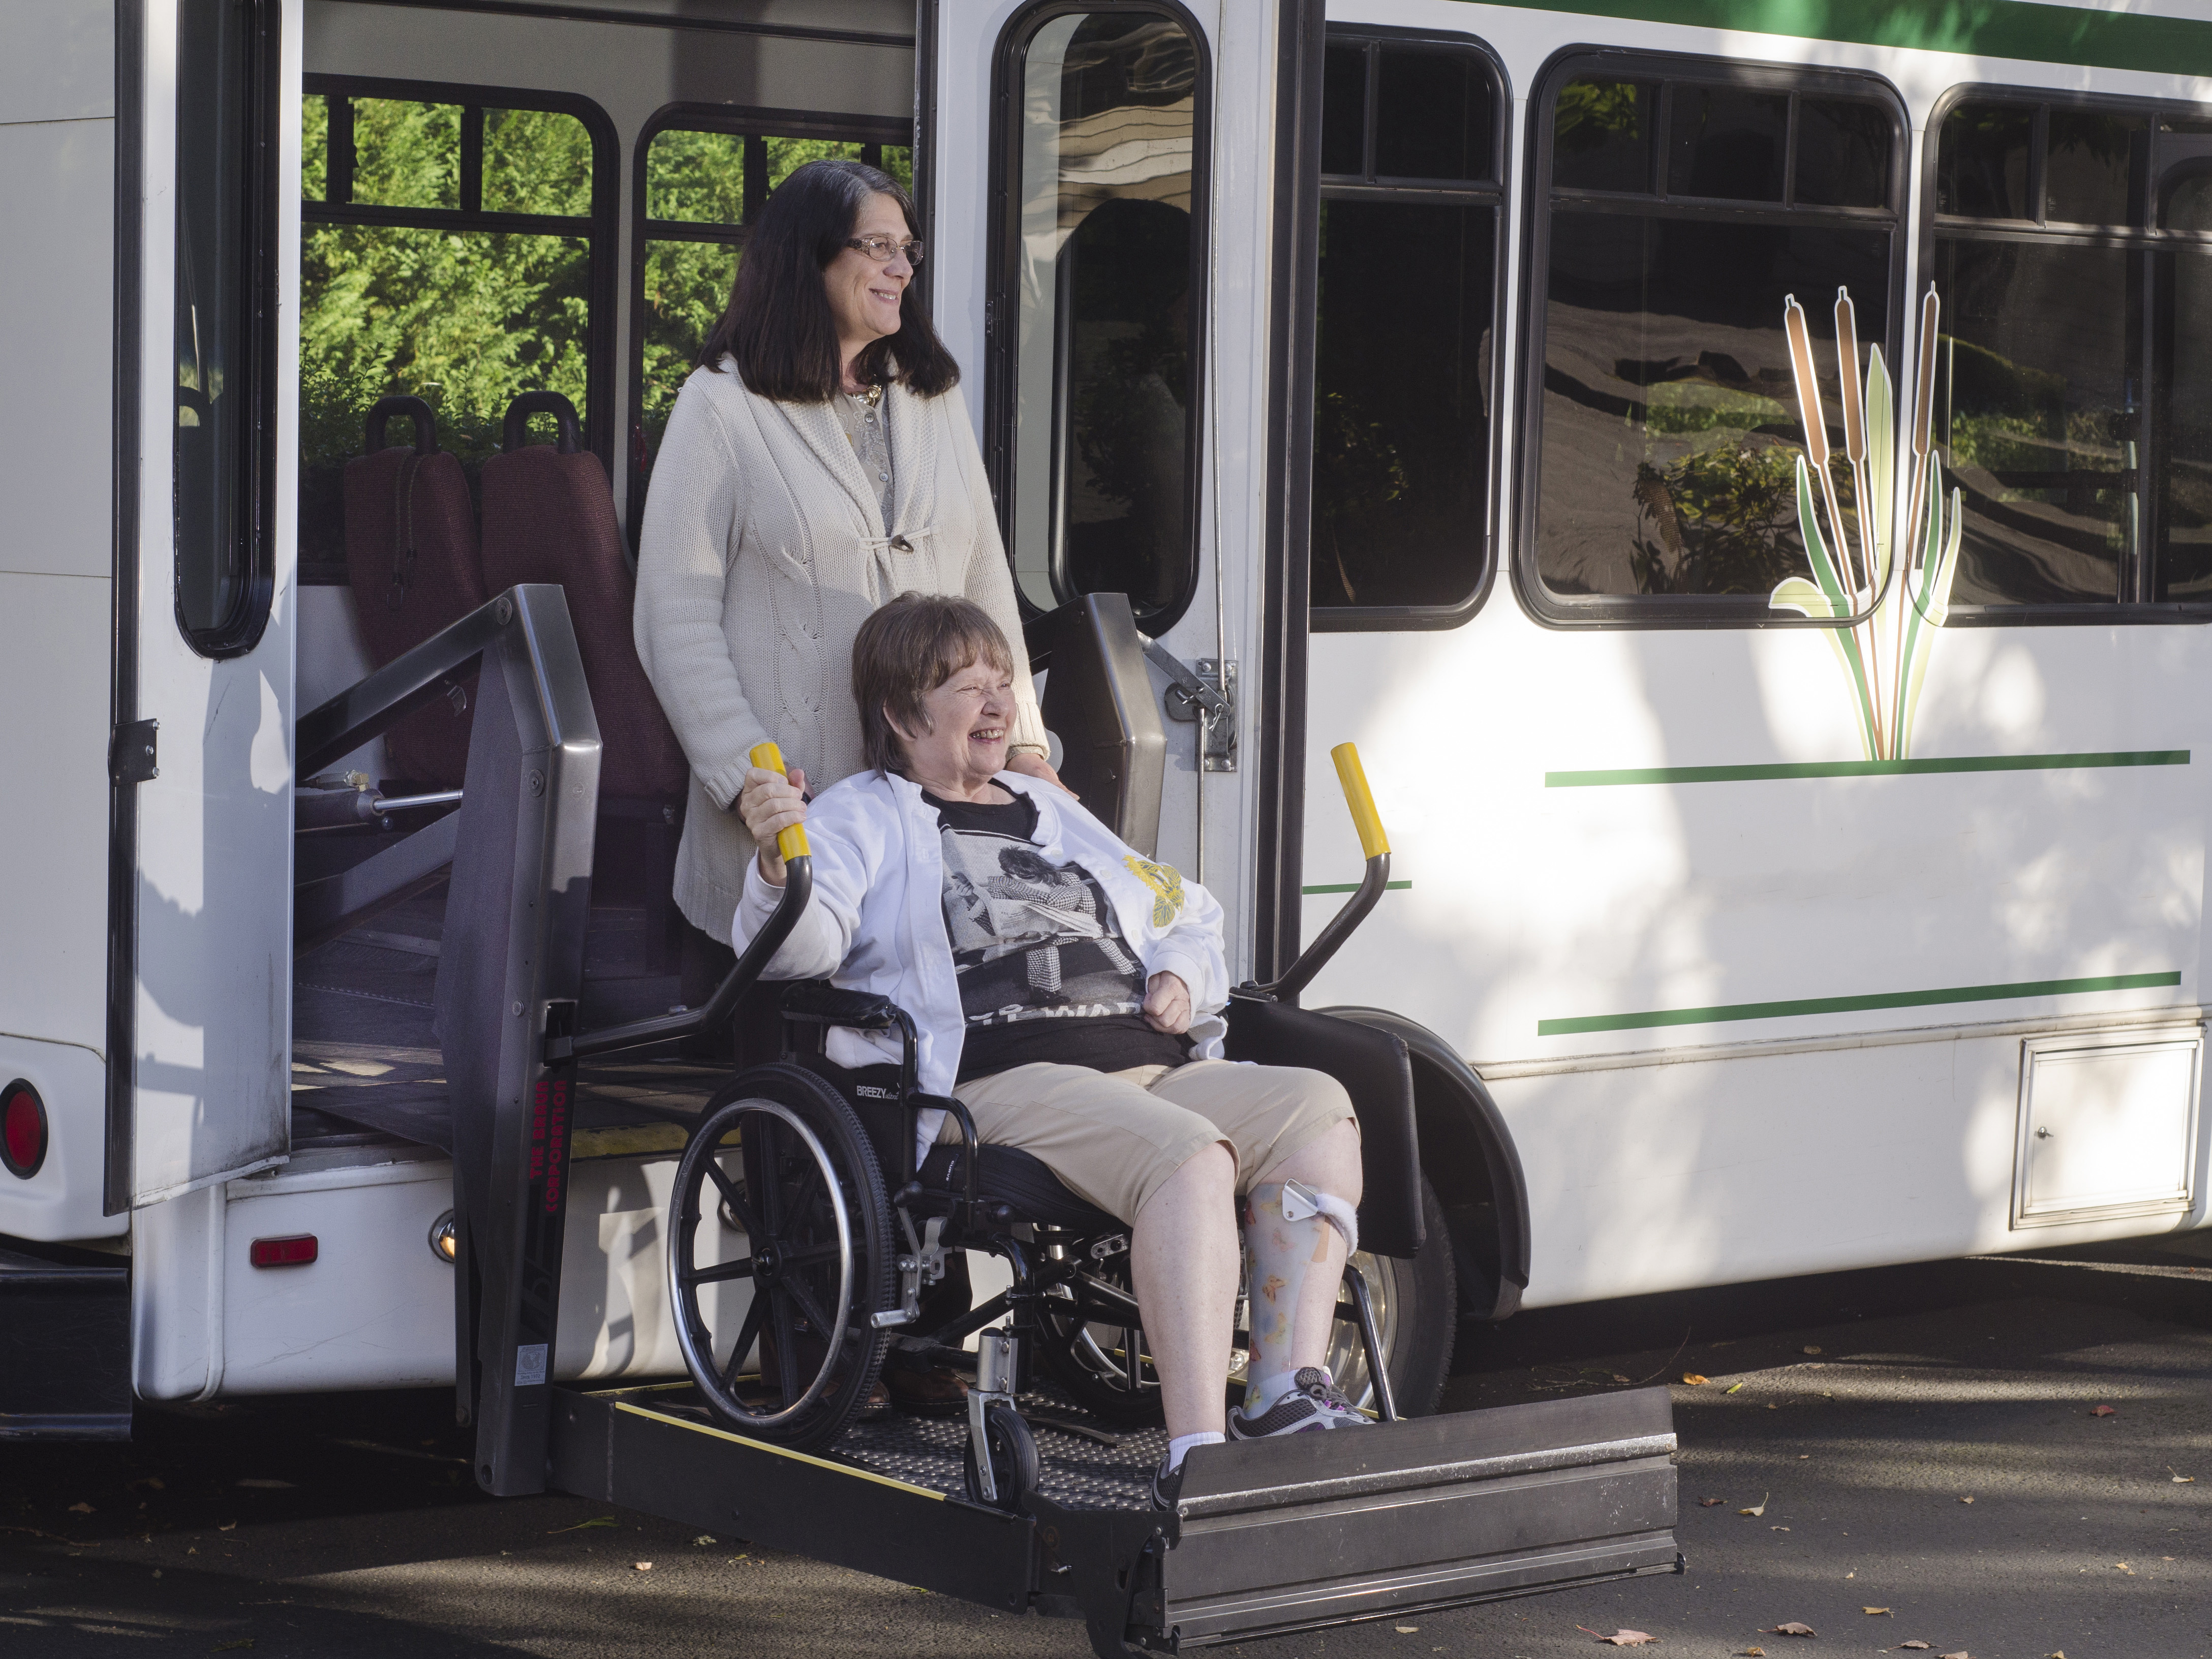 Older woman receiving assistance getting off community transport